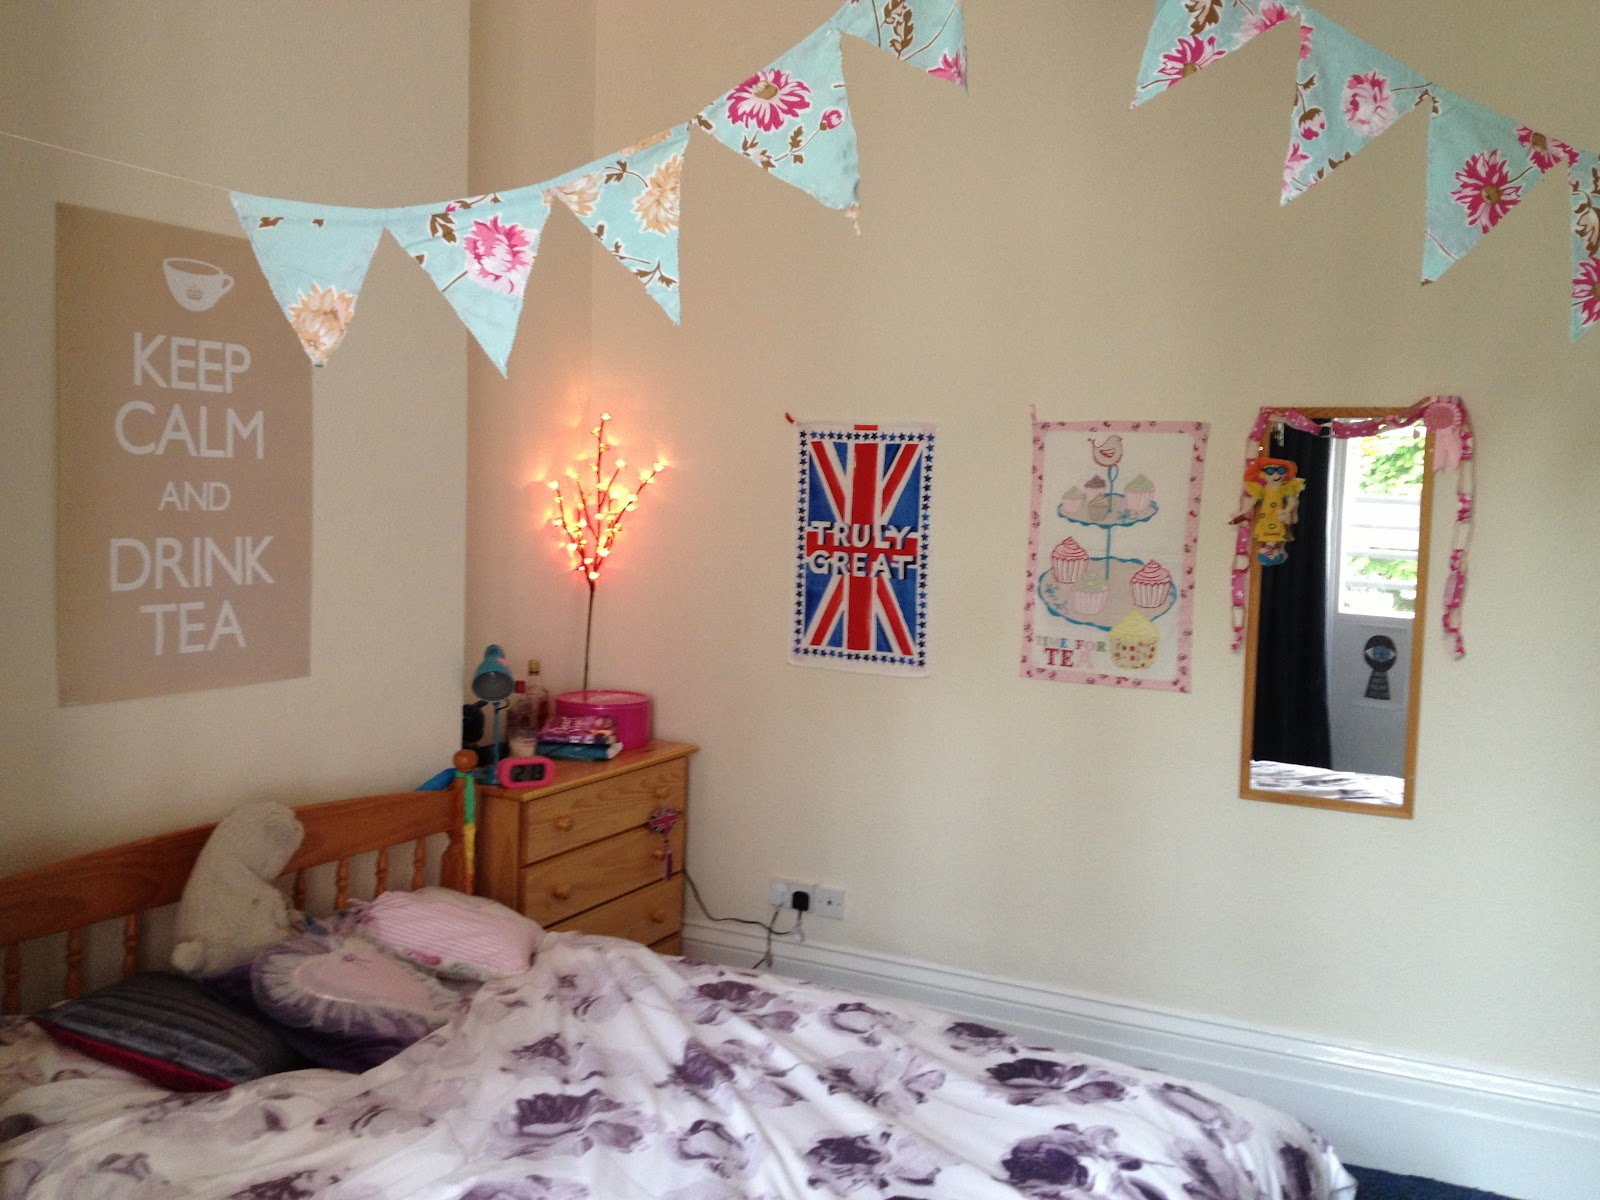 The twenty best ways to decorate your student room at uni for Room decor you can make